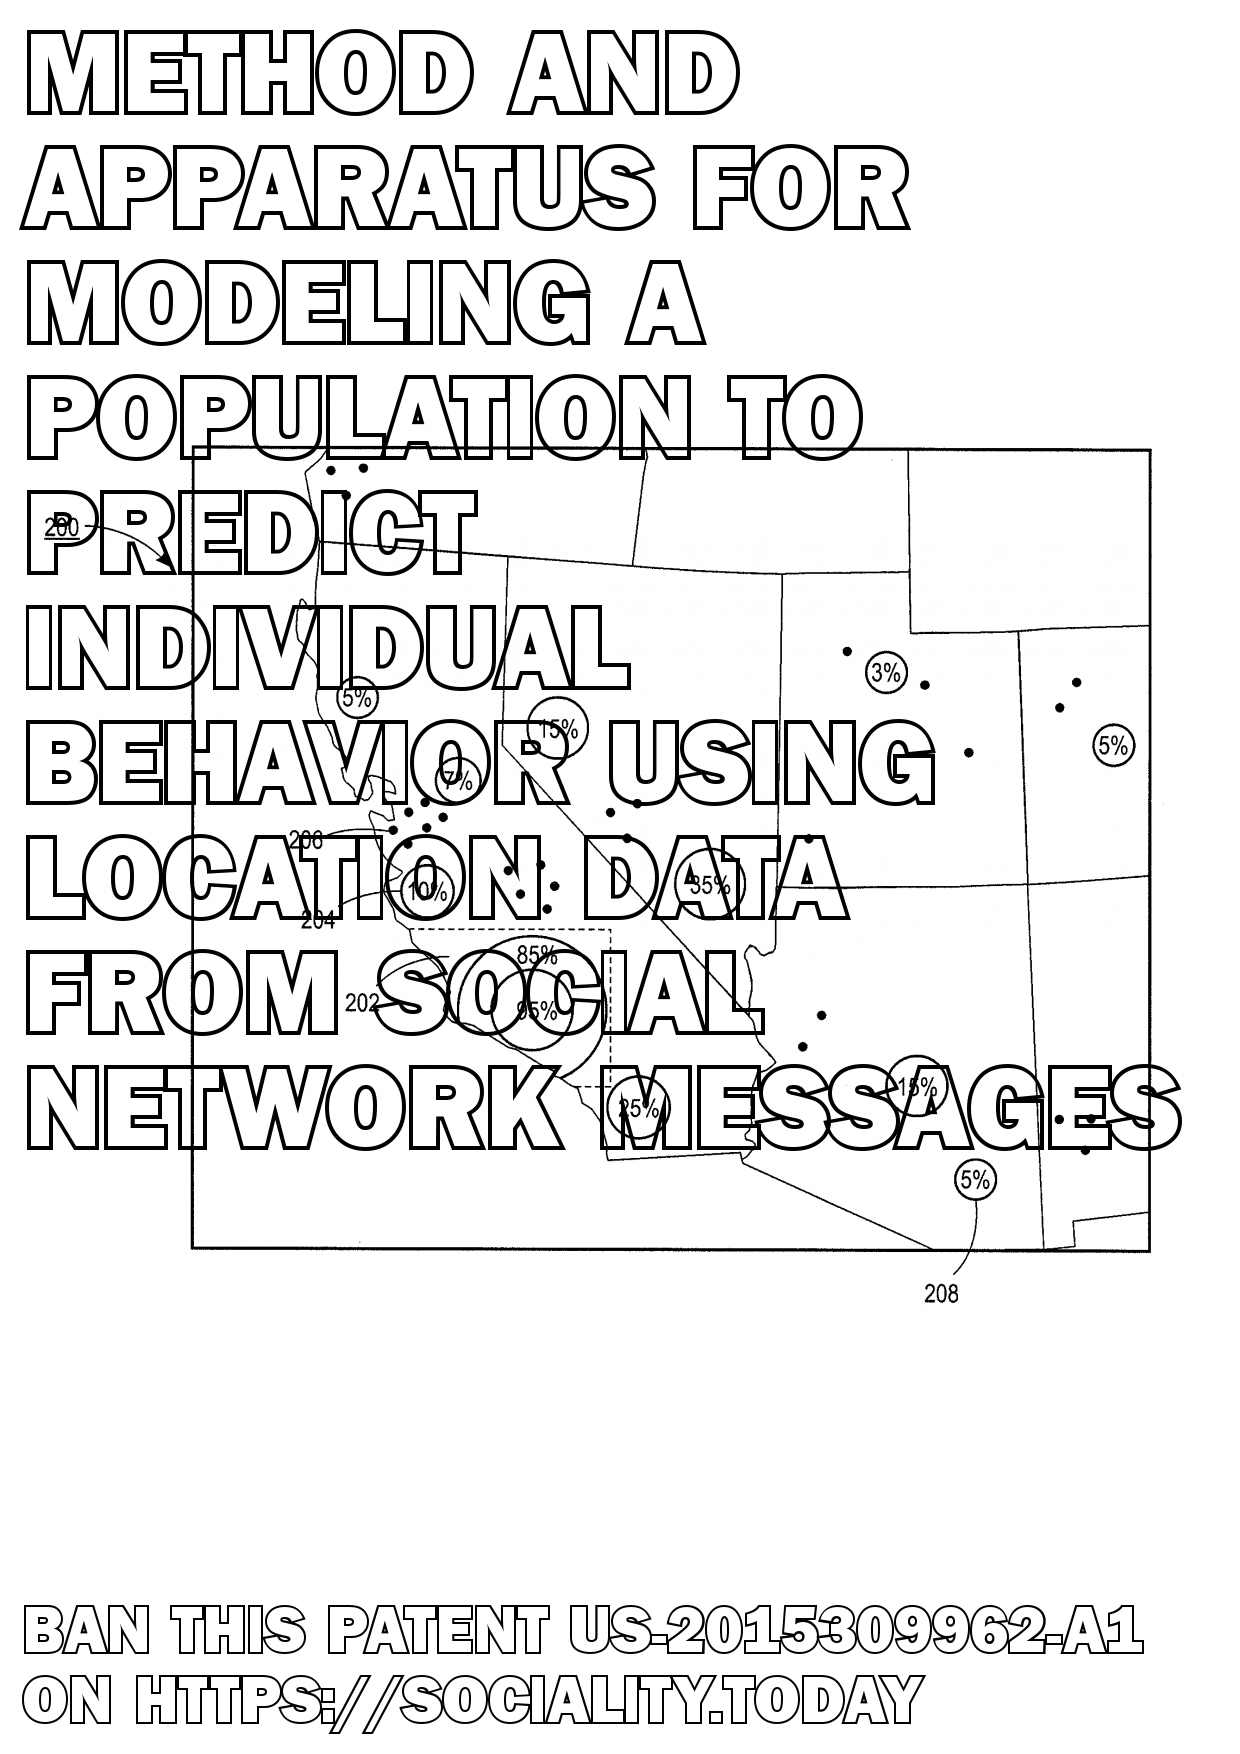 Method and apparatus for modeling a population to predict individual behavior using location data from social network messages  - US-2015309962-A1